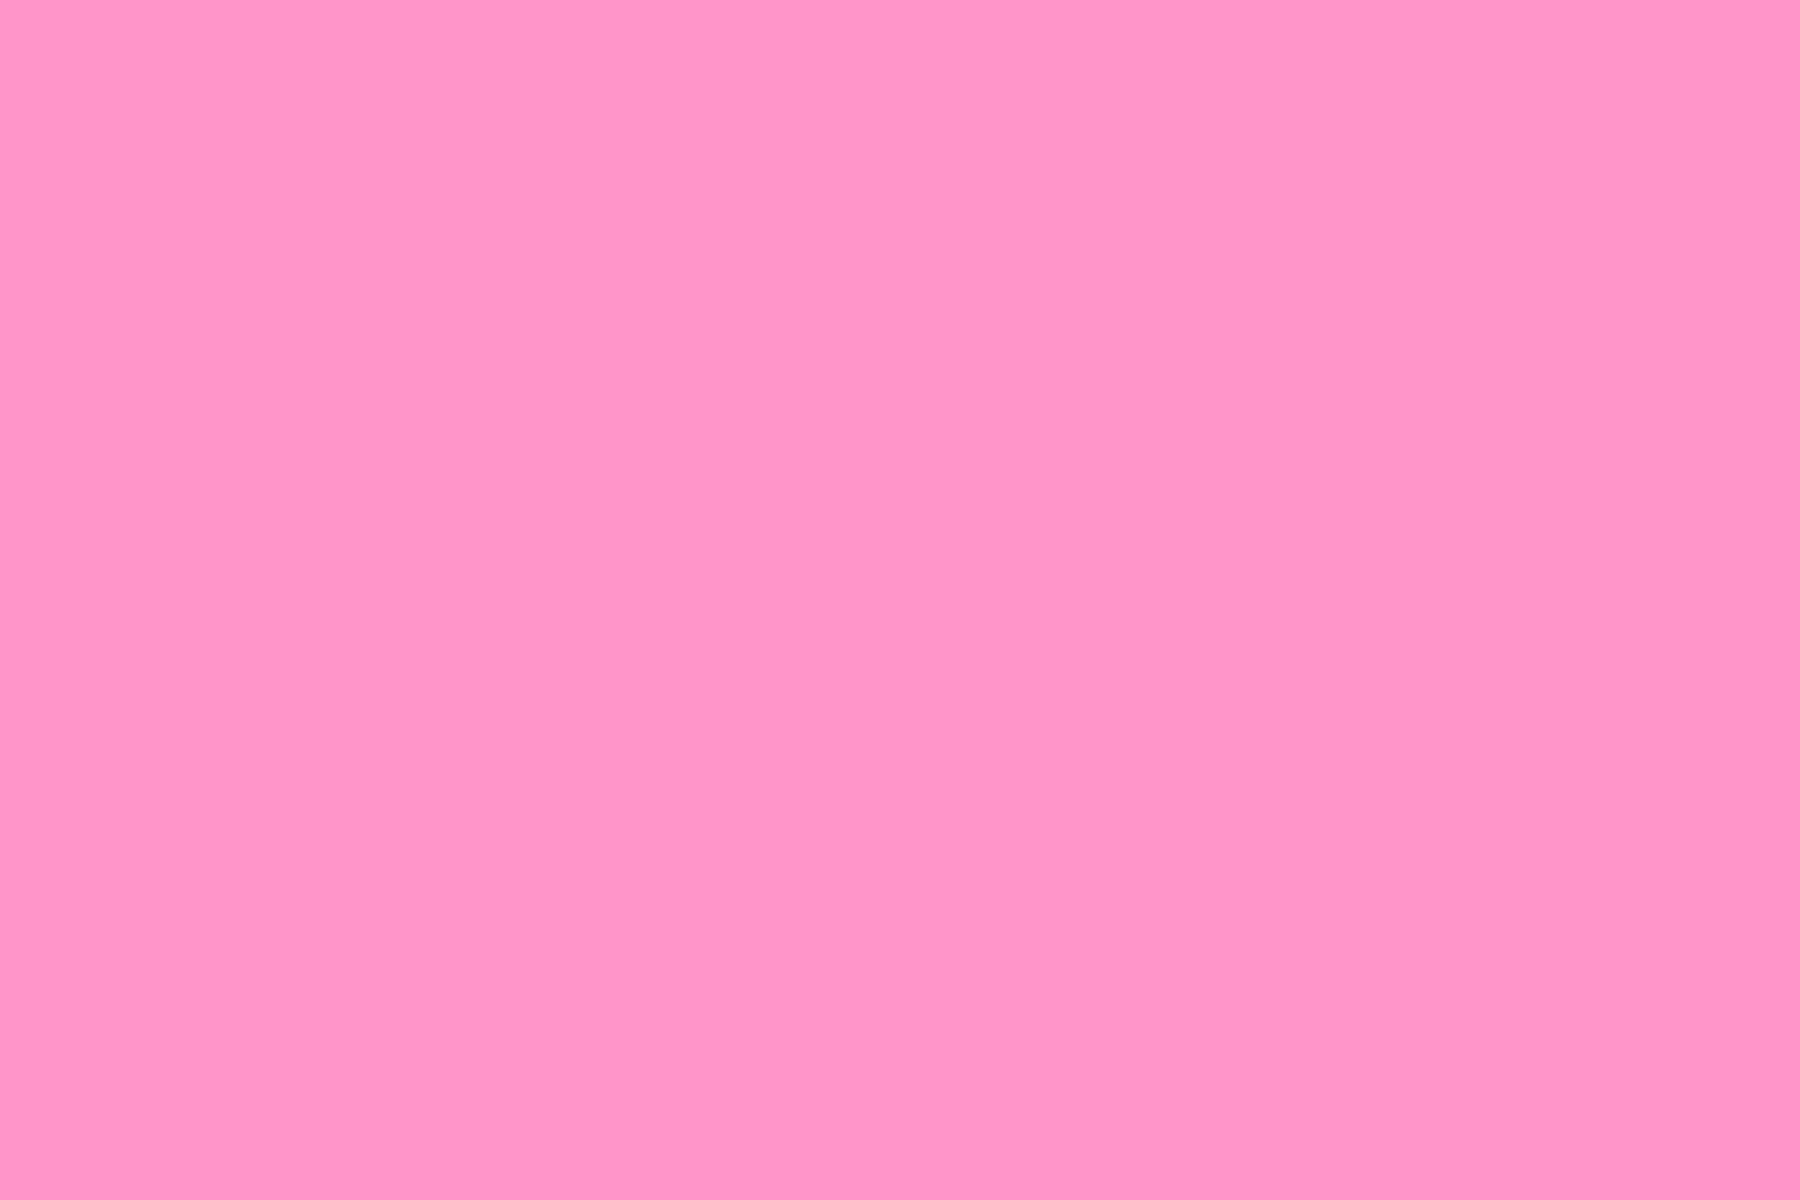 Pink Screen | A Screen Of Pure Pink For 10 Hours ... |Plain Pink Backgrounds